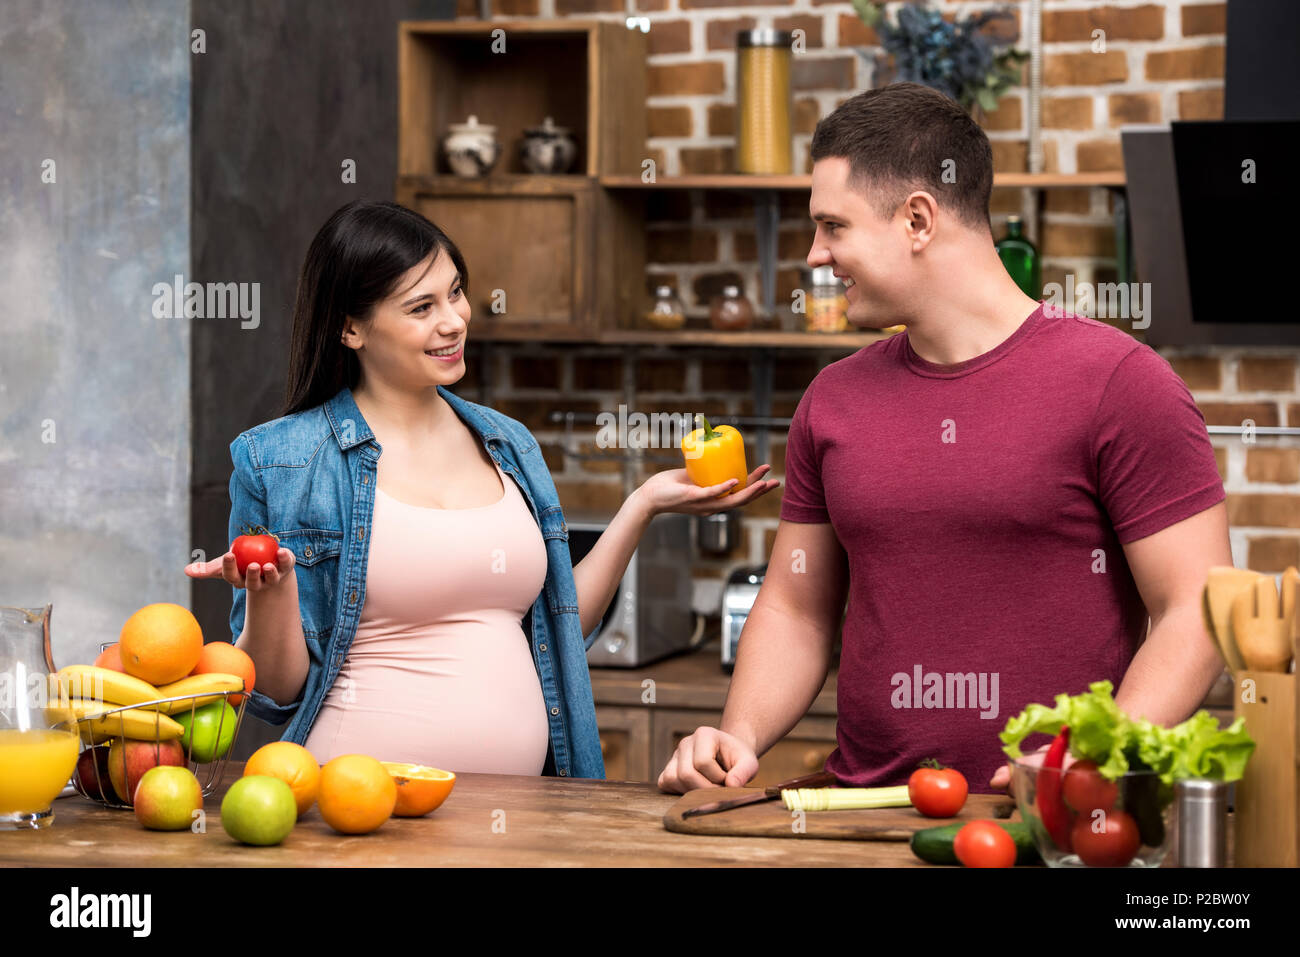 happy young pregnant couple smiling each other while cooking together at kitchen - Stock Image